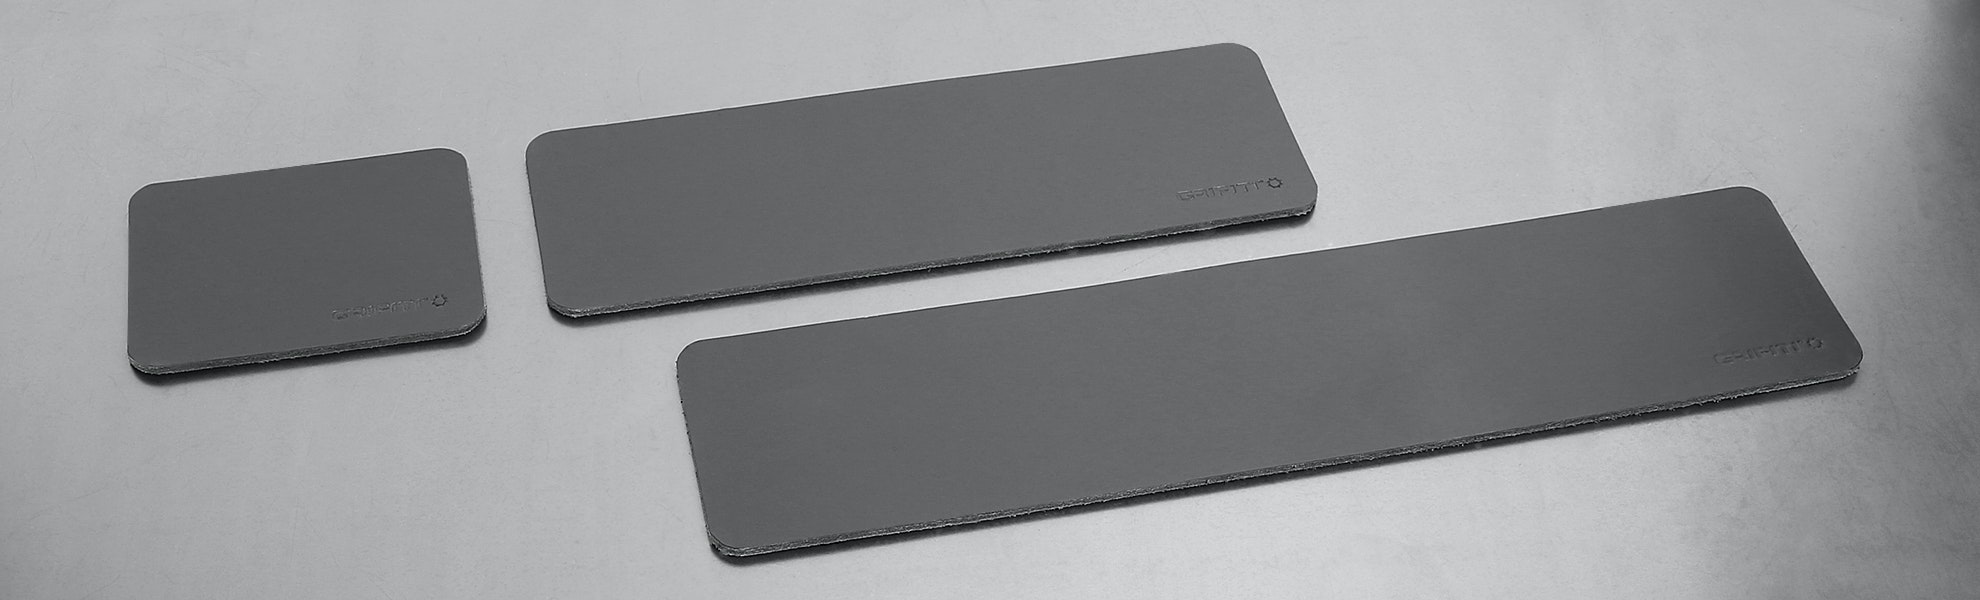 Grifiti Slim Leather Wrist Pad Bundle